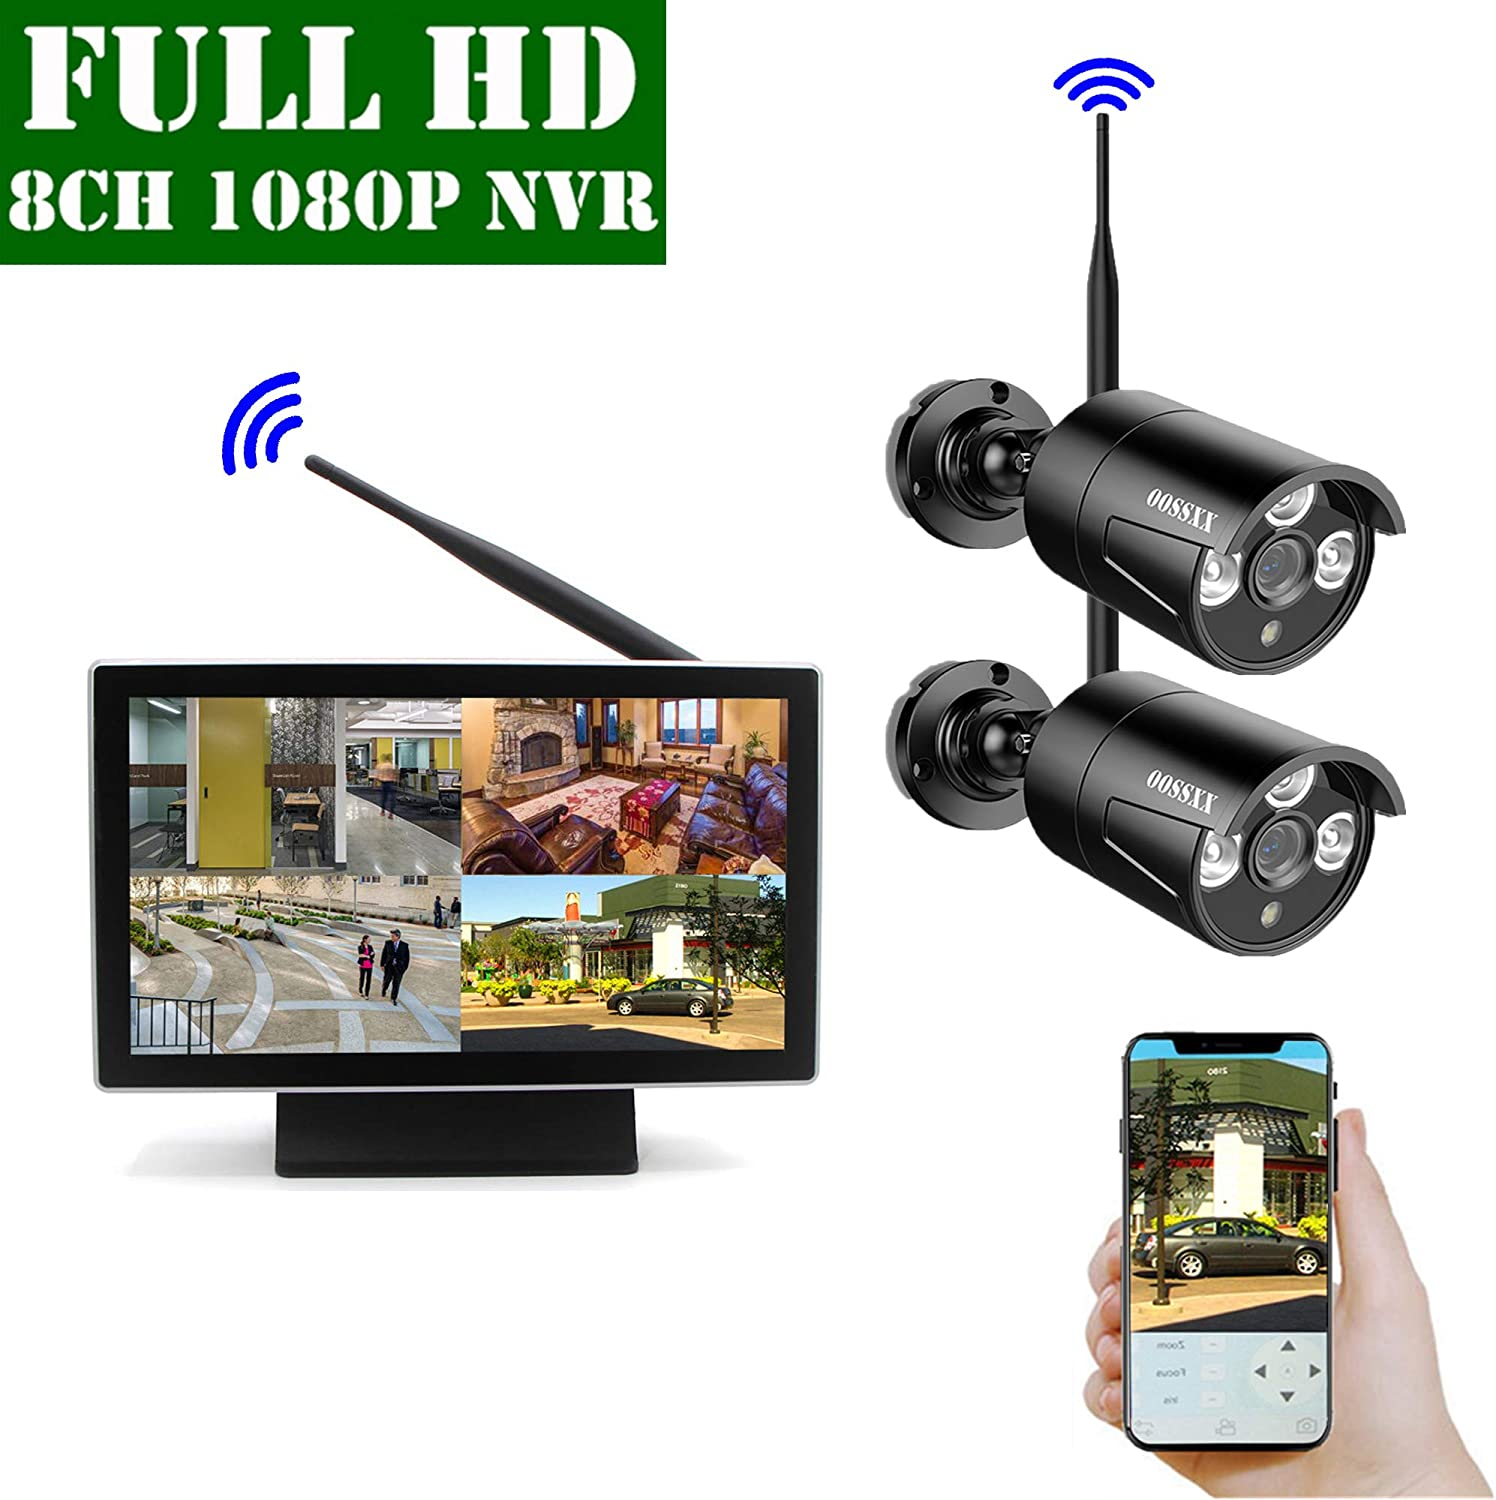 2019 Update 10 inch Screen HD 1080P 8-Channel Outdoor Wireless Security Camera System,2pcs 1080P Wireless IP67 Weatherproof IP Cameras,70FT Night Vision,P2P,App, NO Hard Drive